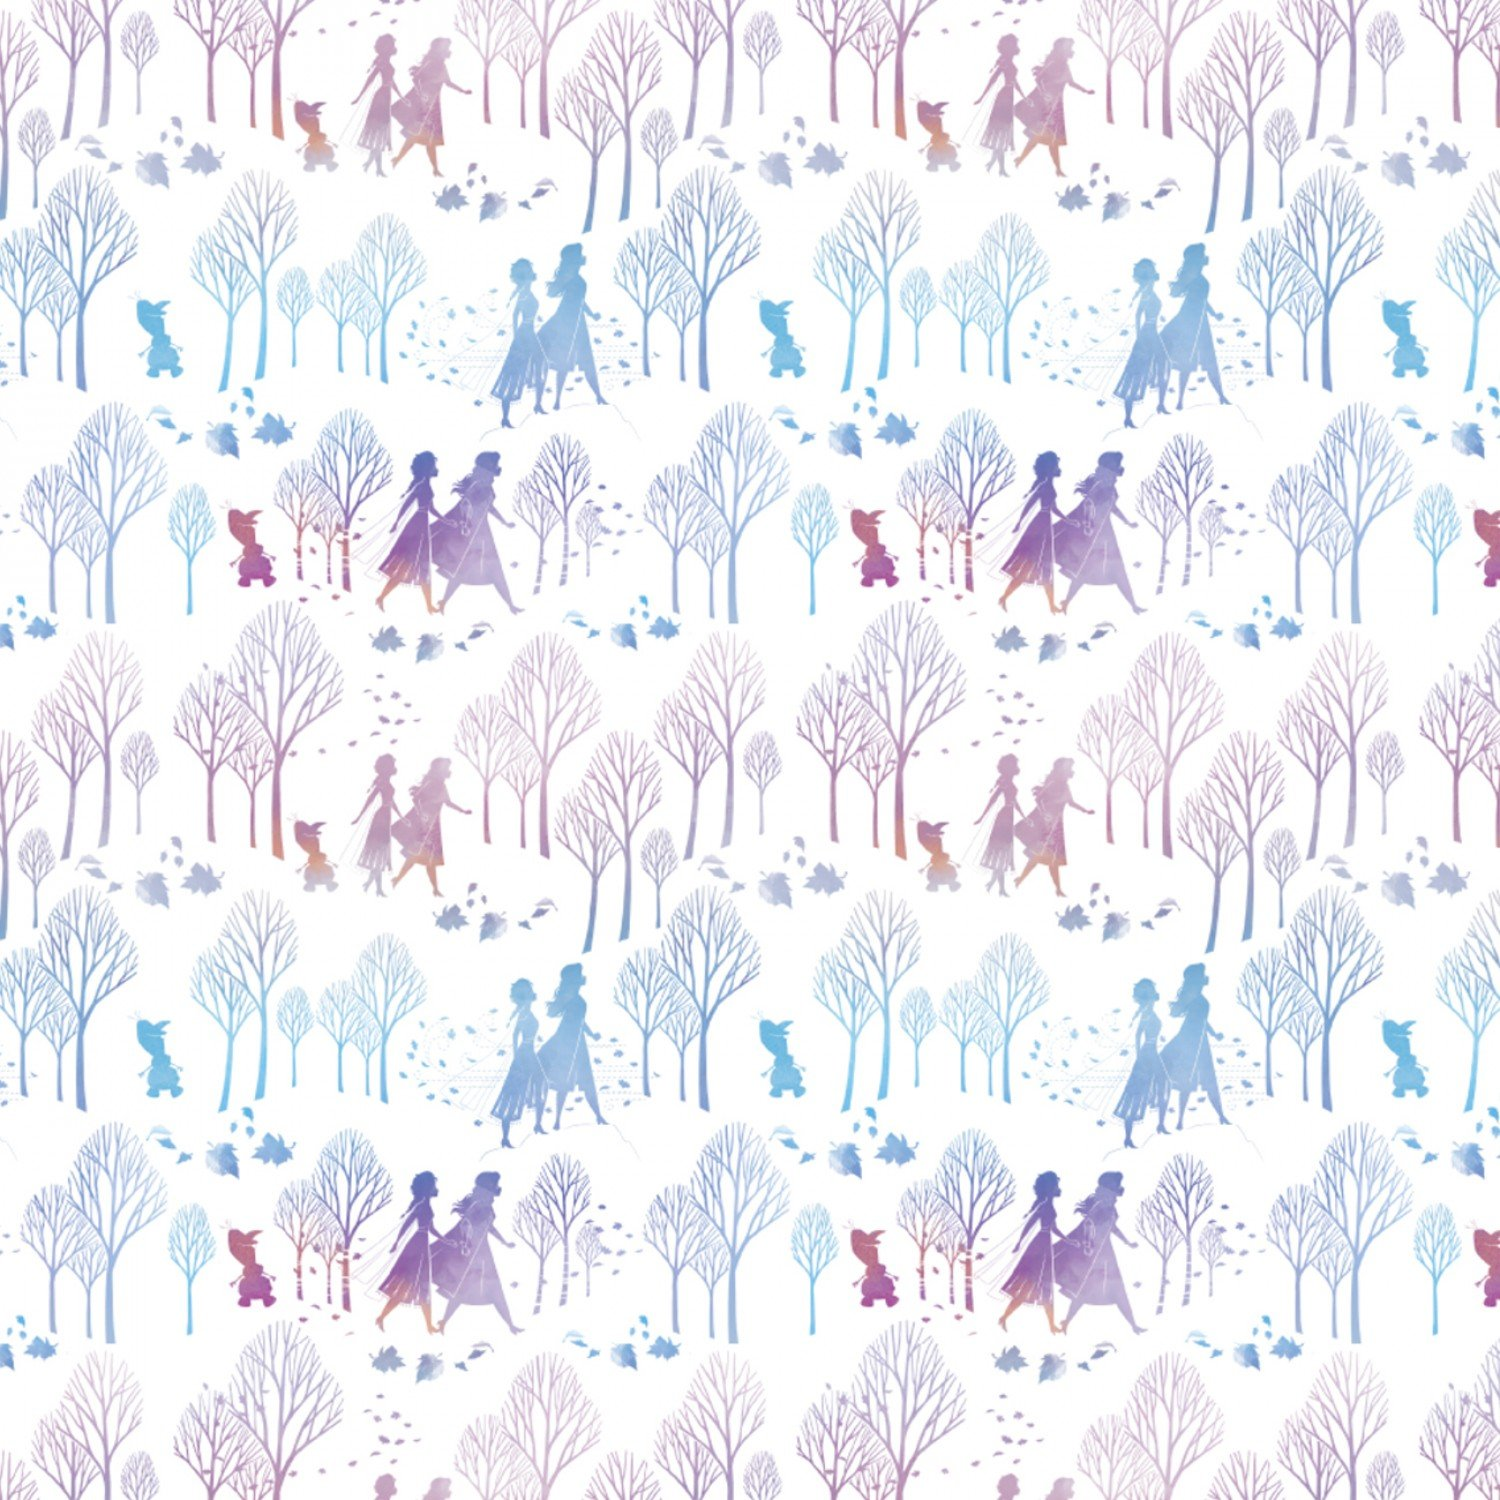 Frozen 2 Disney Fabric Trees and Silhouettes Cotton 43-44 Inches